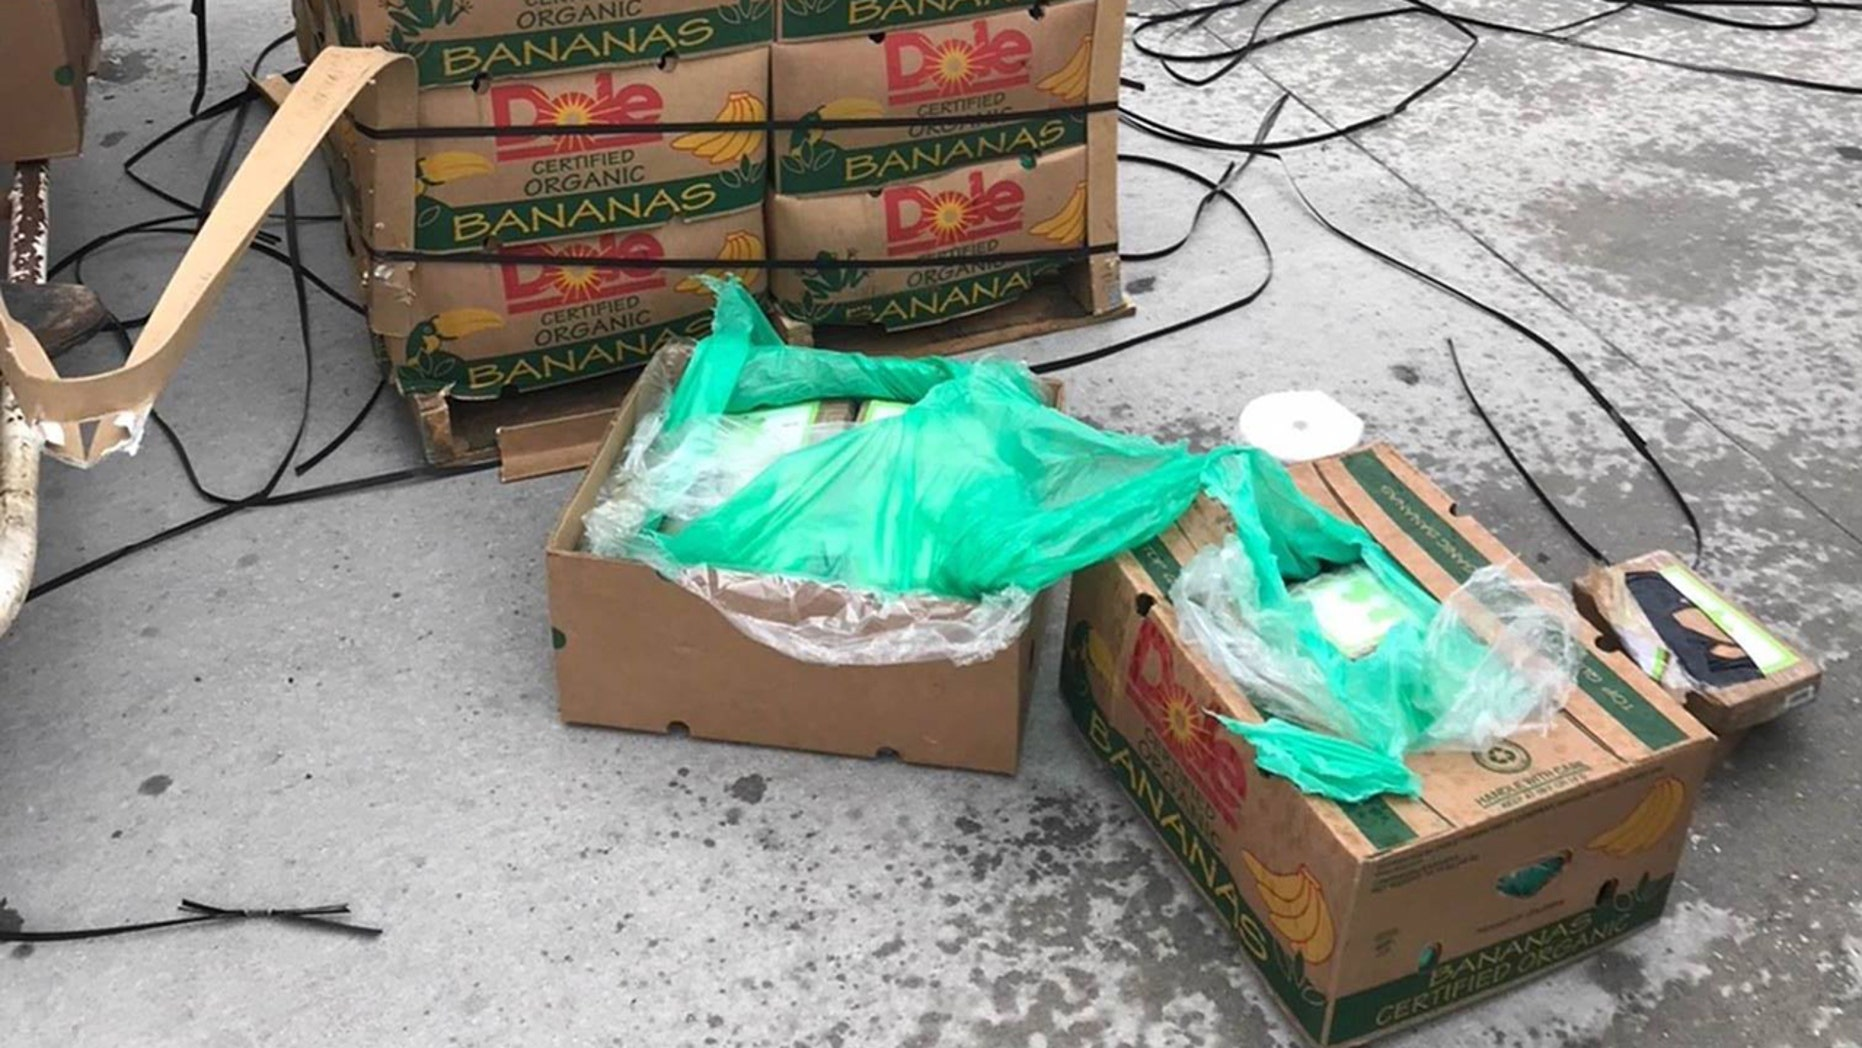 Authorities discovered nearly $18 million worth of cocaine underneath bundles of bananas on Friday in Texas.